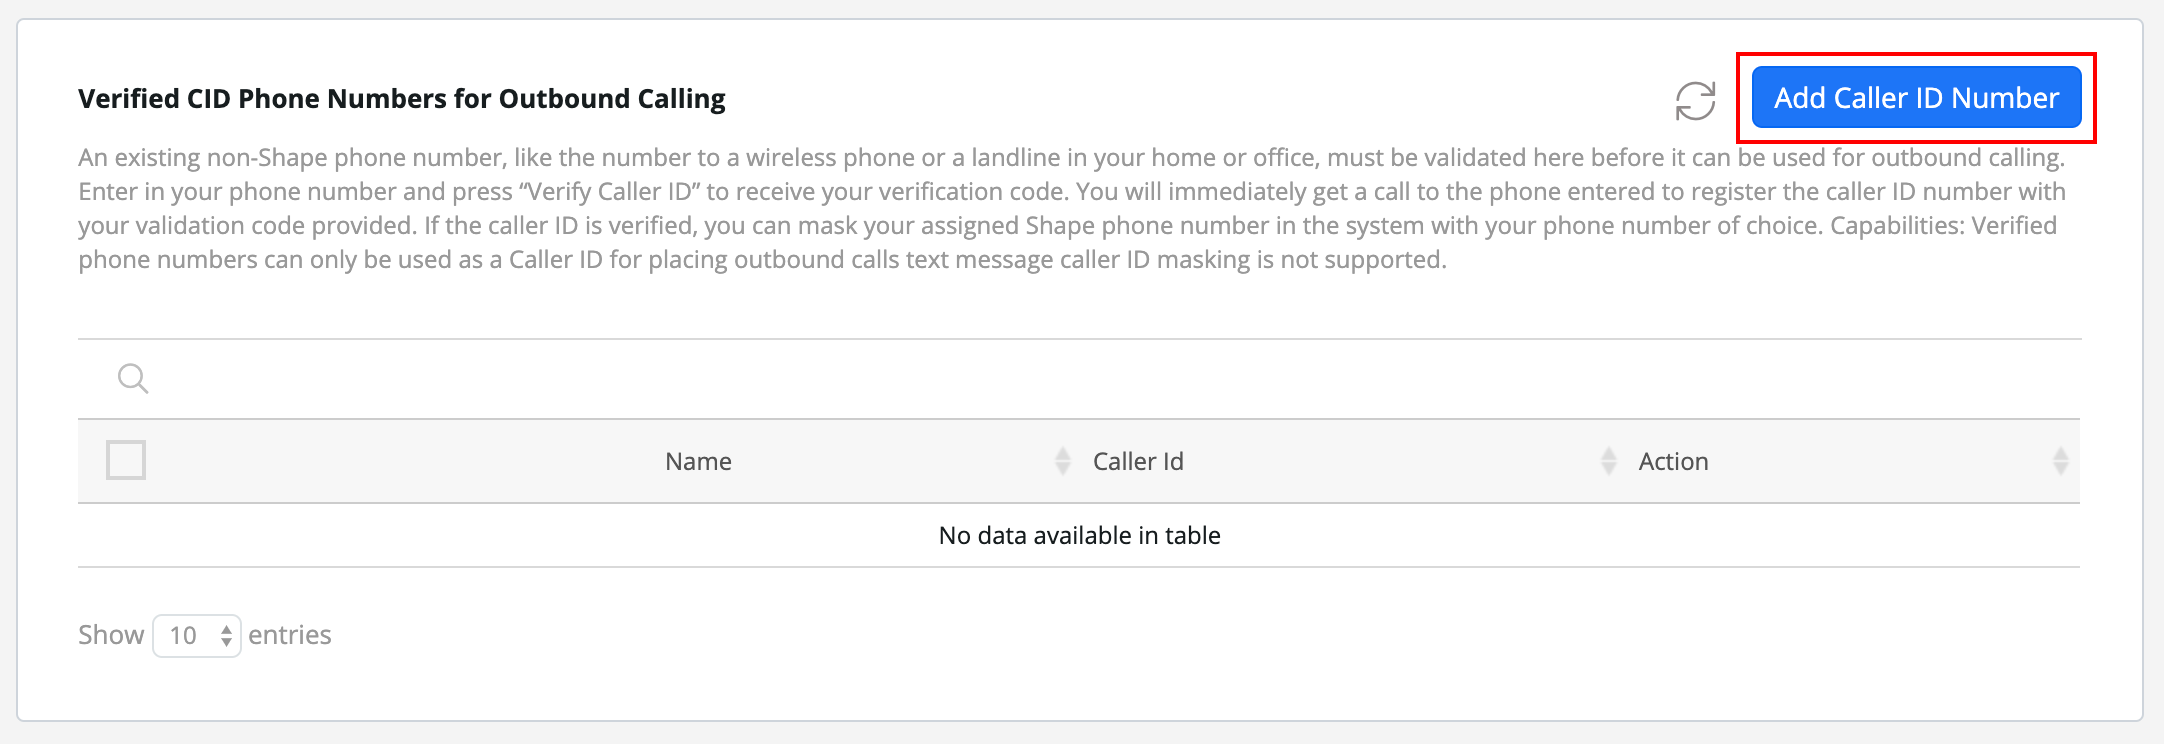 """Step 7:  Have existing phone numbers such as a personal line, company phone number, or mobile number that you'd like to use instead of the Shape phone number? Verify Caller ID phone numbers by pressing the """"Add Caller ID Number"""" button.   Note:   Verified phone numbers can only be used as a Caller ID for placing outbound calls text message caller ID masking is not supported."""